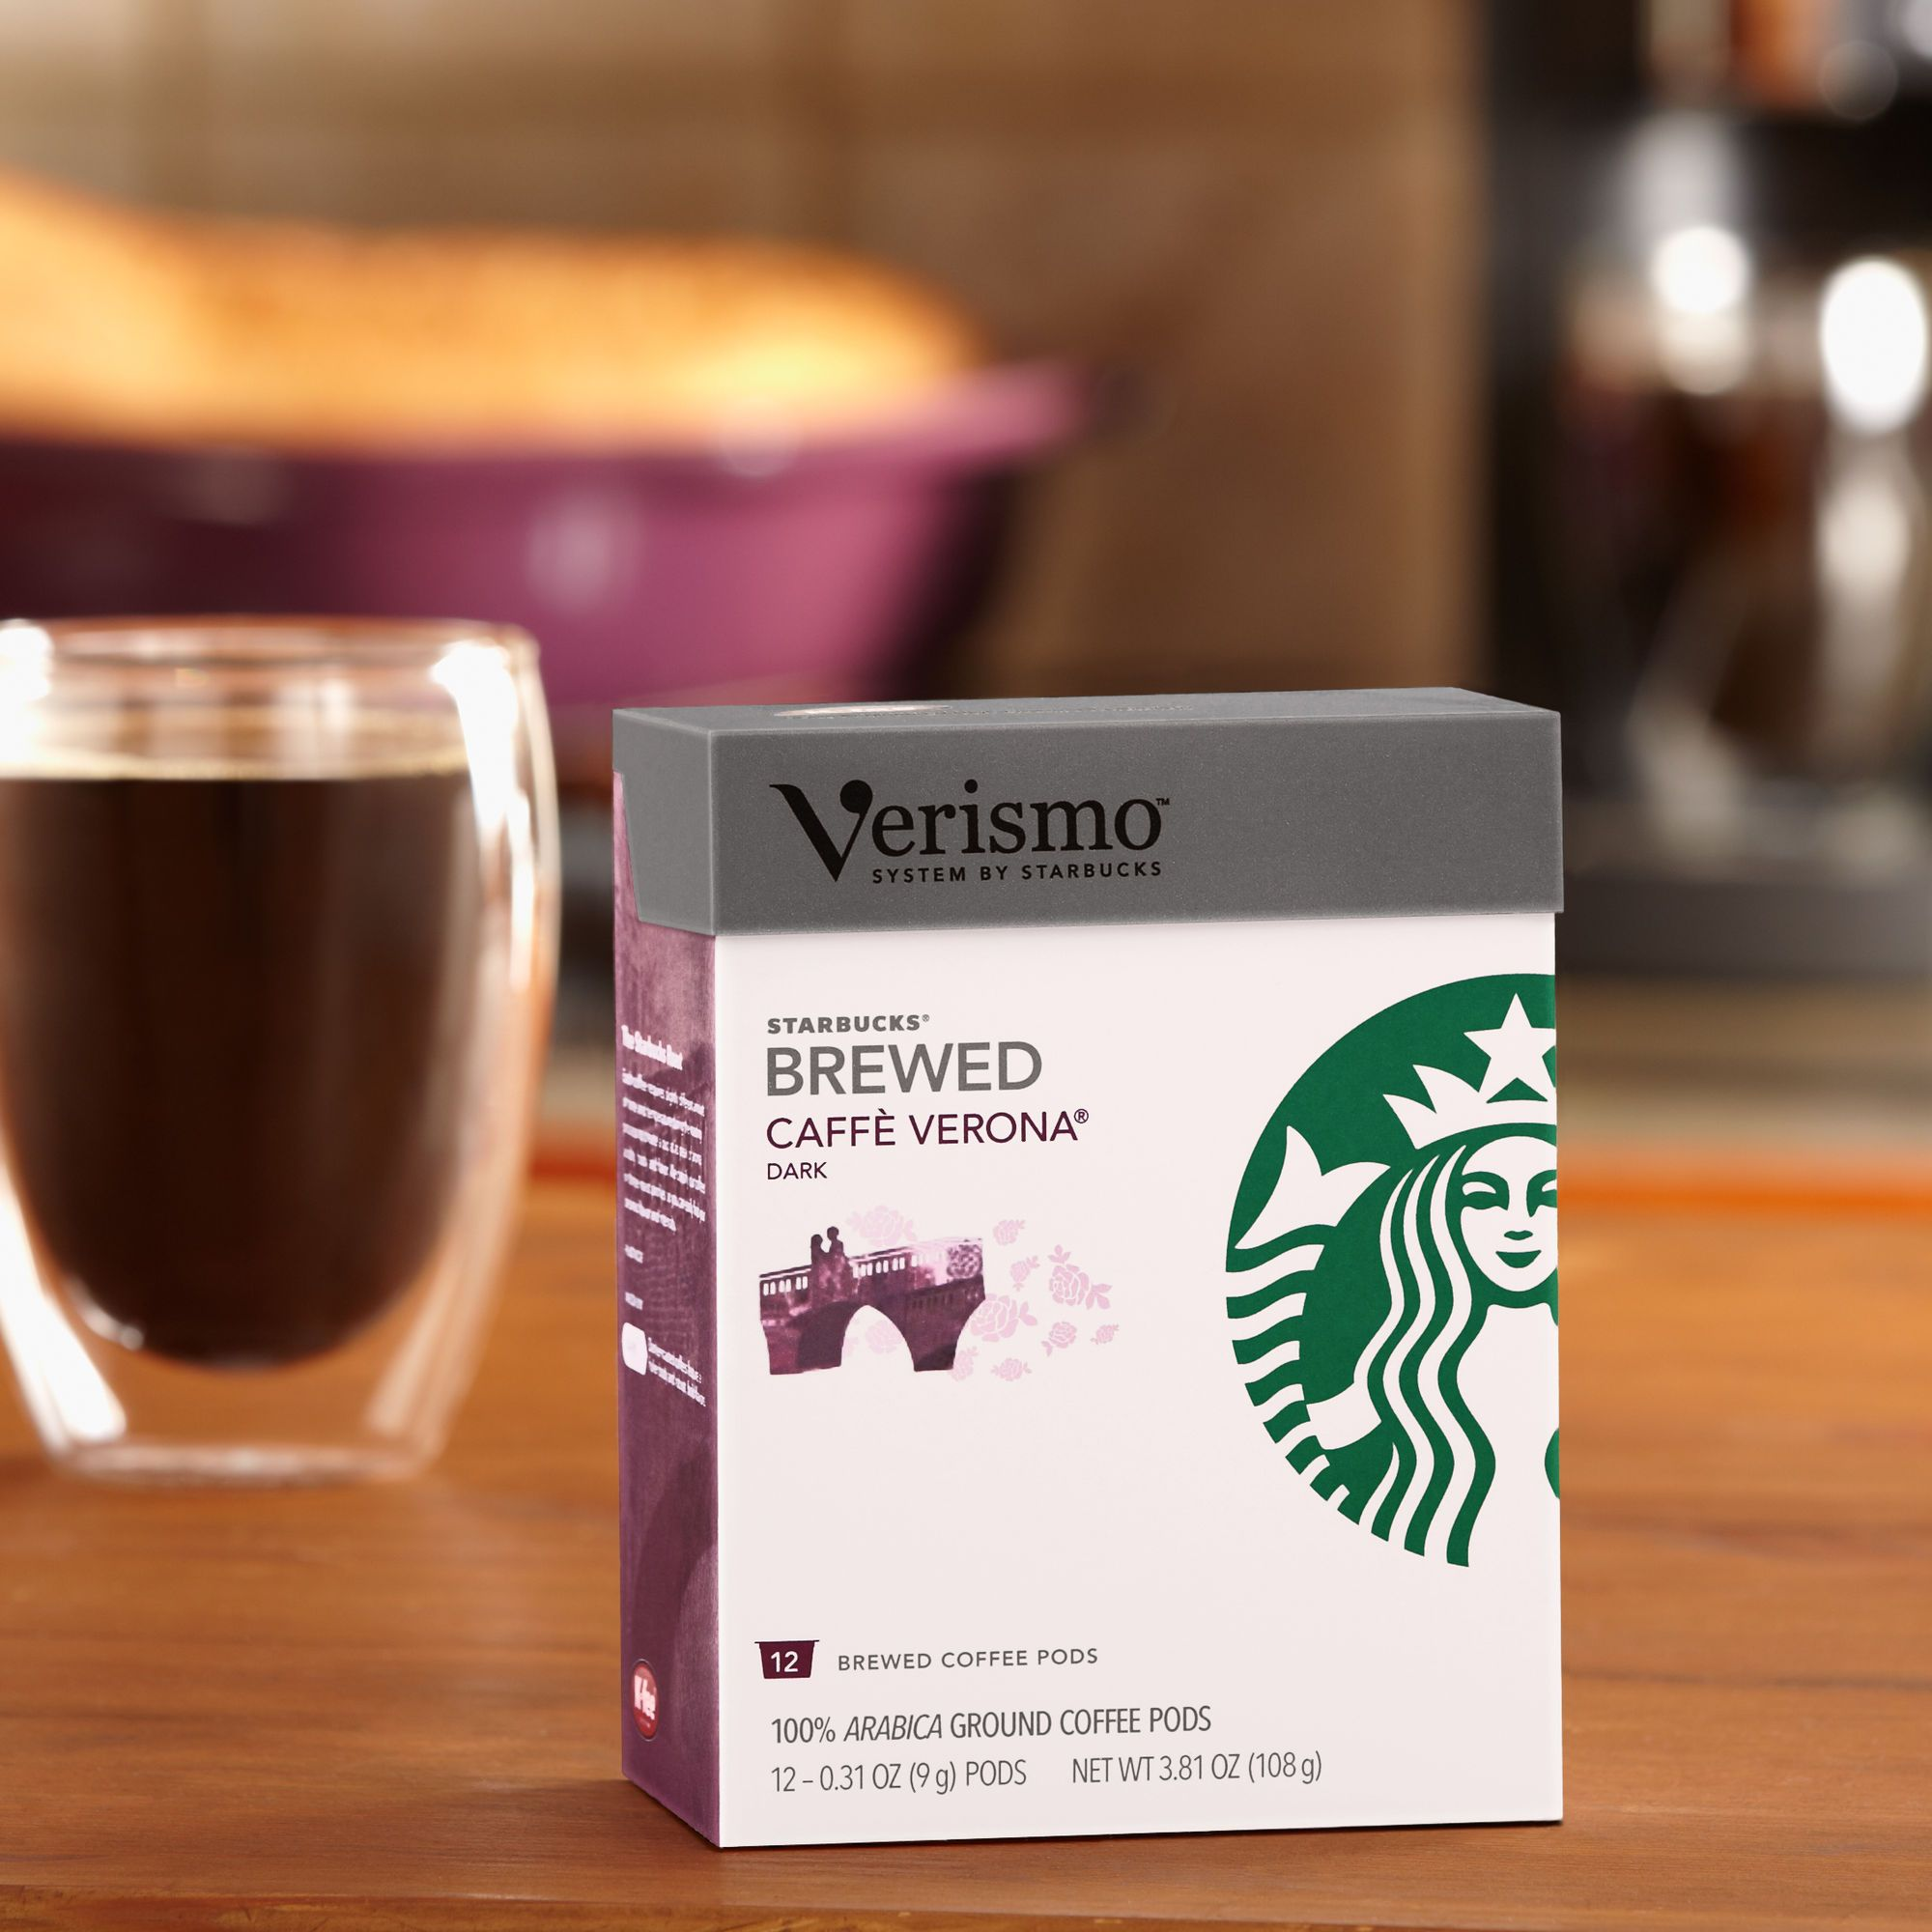 Verismo™ Caffè Verona Brewed Coffee Pods A fullbodied